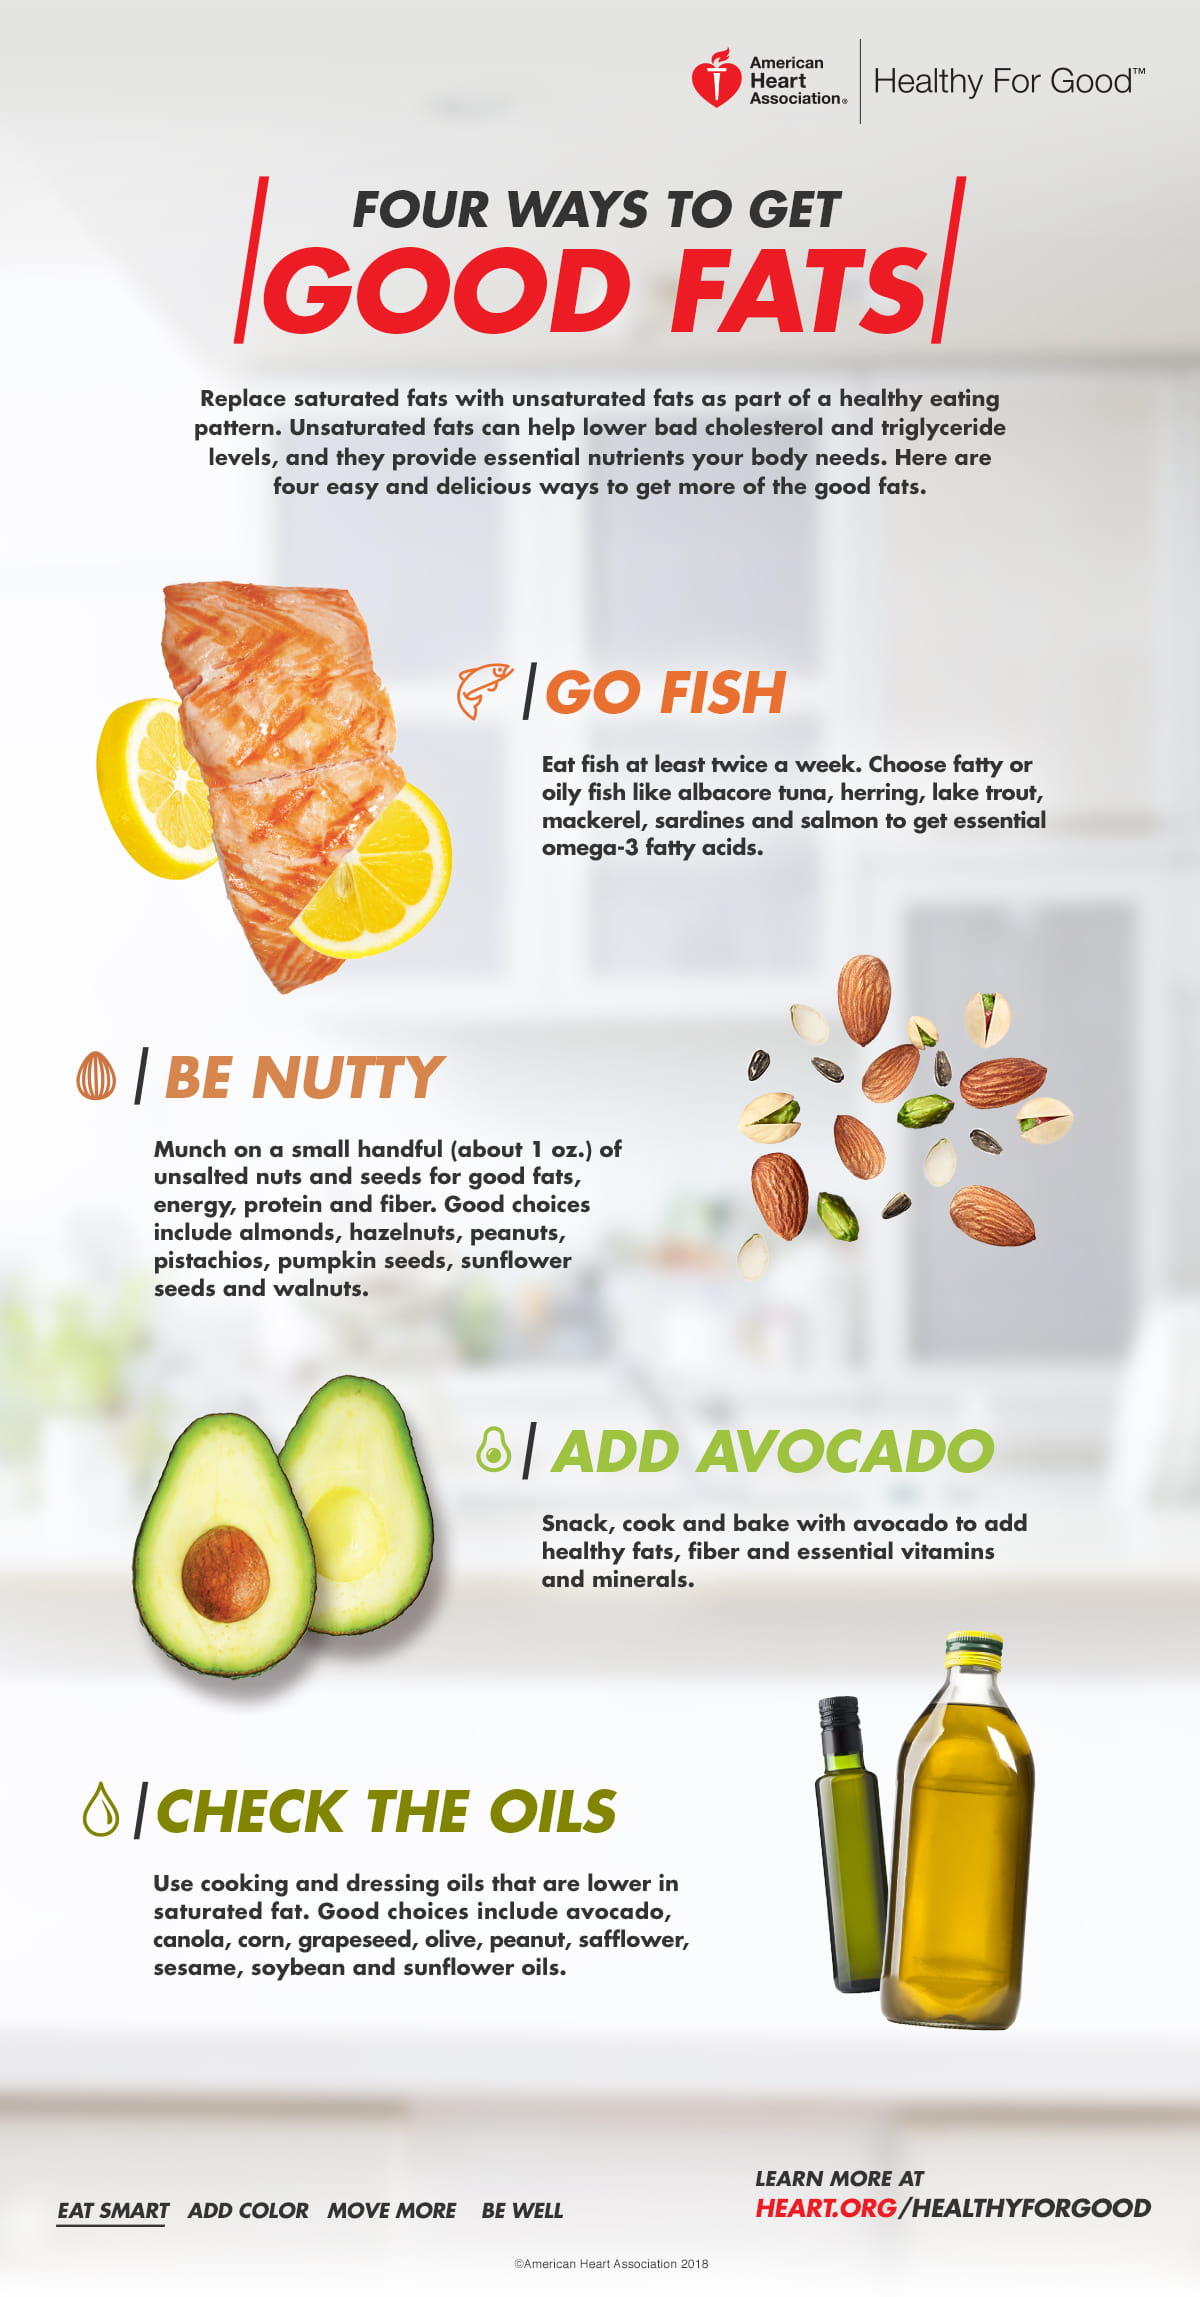 4 Ways to Get Good Fats Infographic